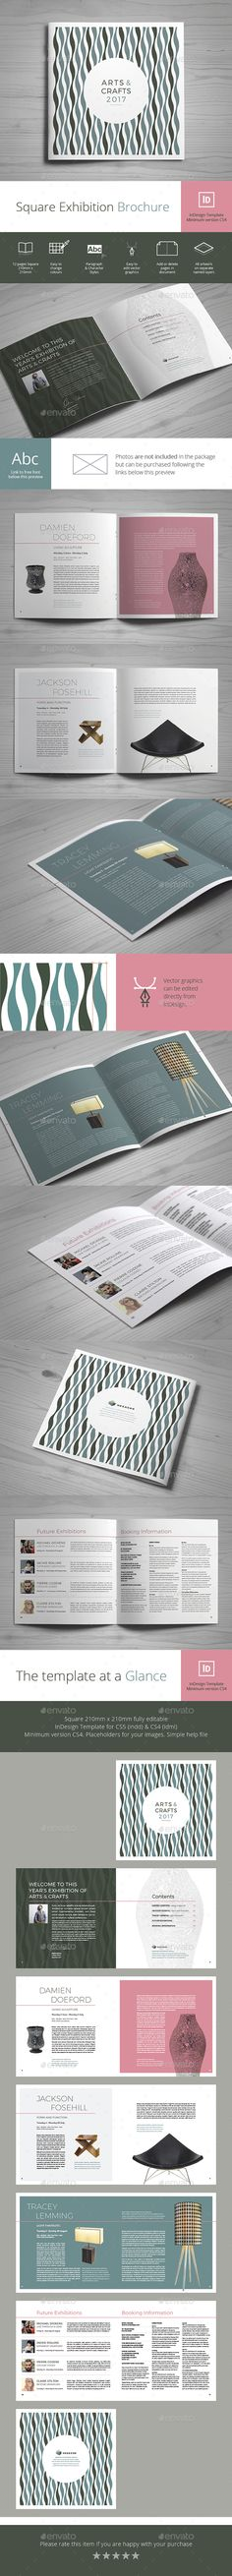 Square Exhibition Brochure Template 	InDesign INDD. Download here: http://graphicriver.net/item/square-exhibition-brochure/16323445?ref=ksioks